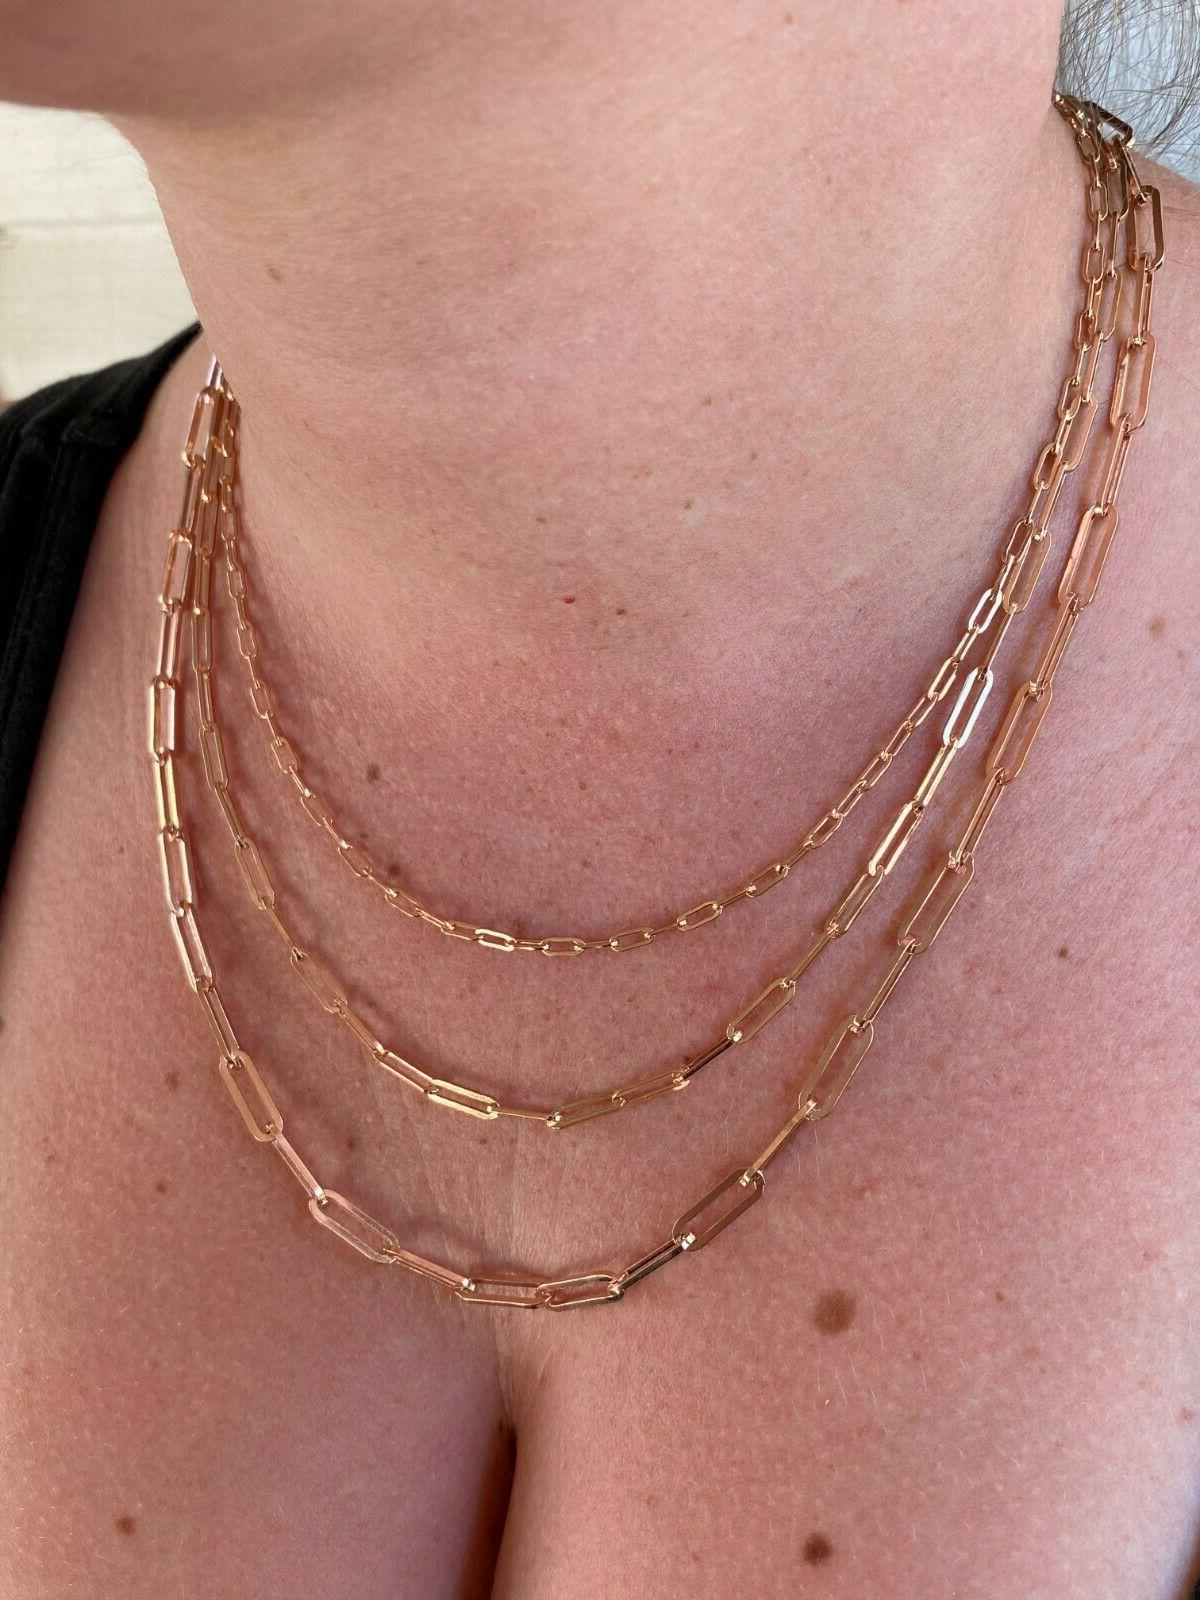 14k Solid 925 Silver Rolo Necklace